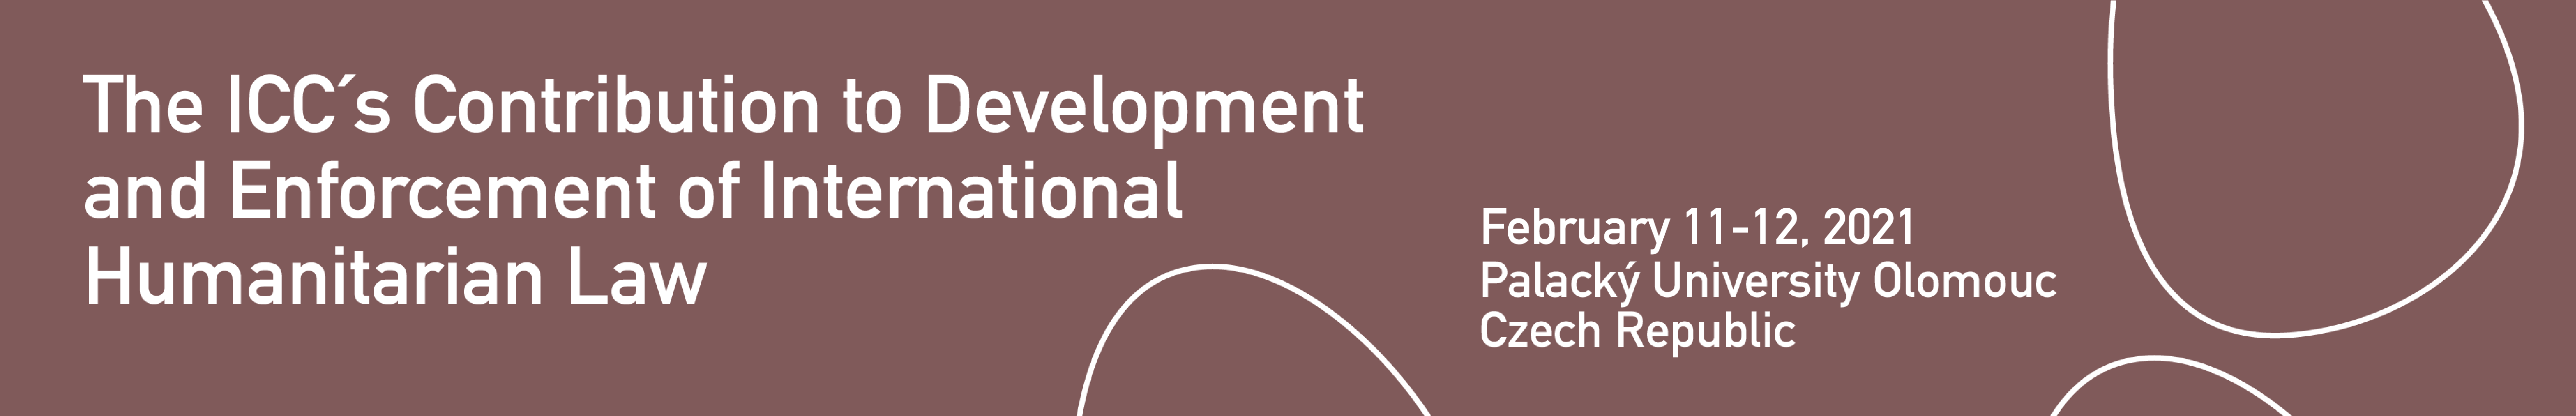 The ICC's Contribution to Development and Enforcement of International Humanitarian Law